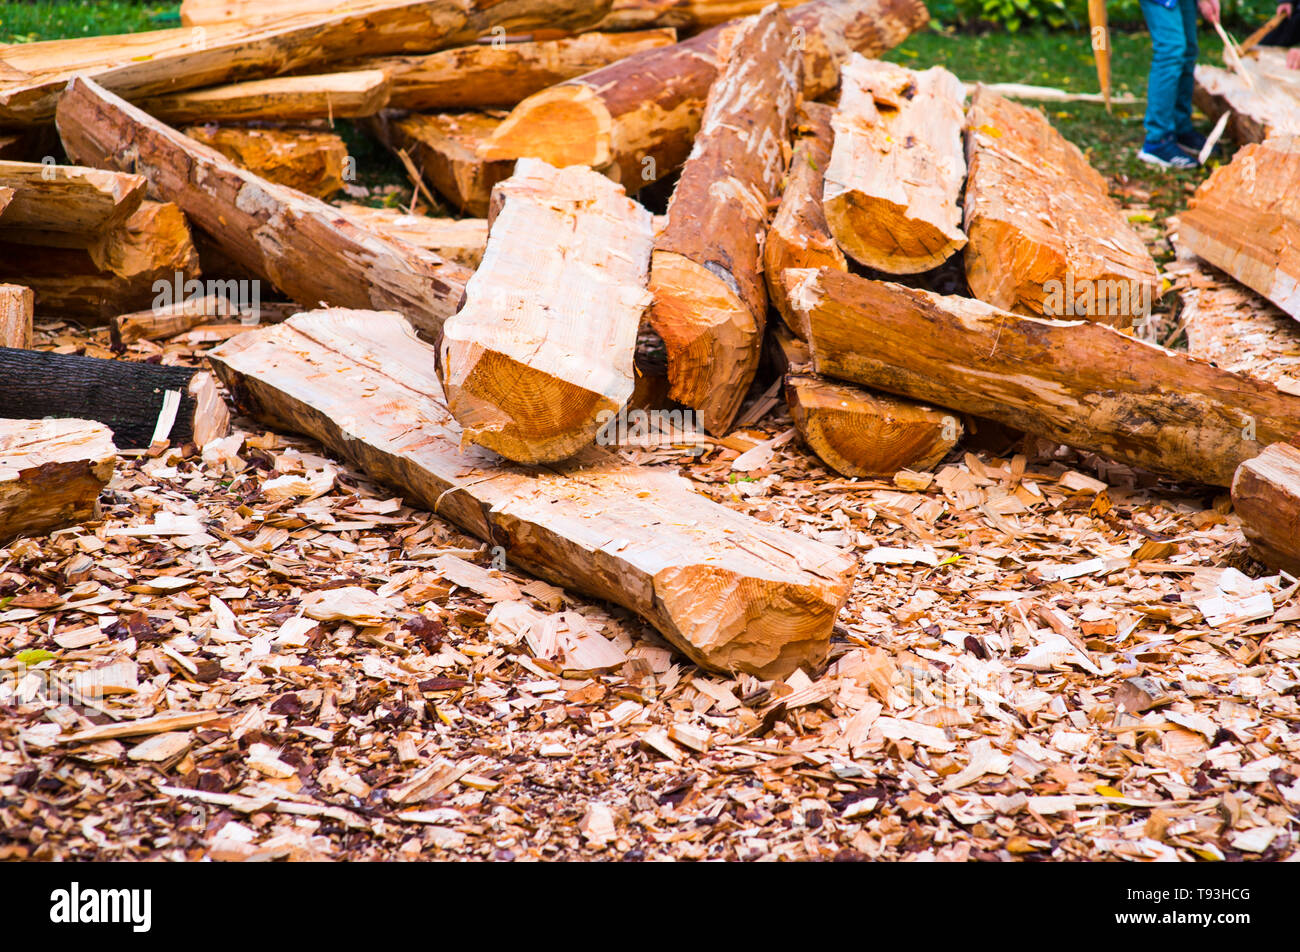 Wood chips. Natural bright yellow colored wooden shavings for protecting plants on flower beds and lawns. With a flower bed fragment. Alternative to a Stock Photo